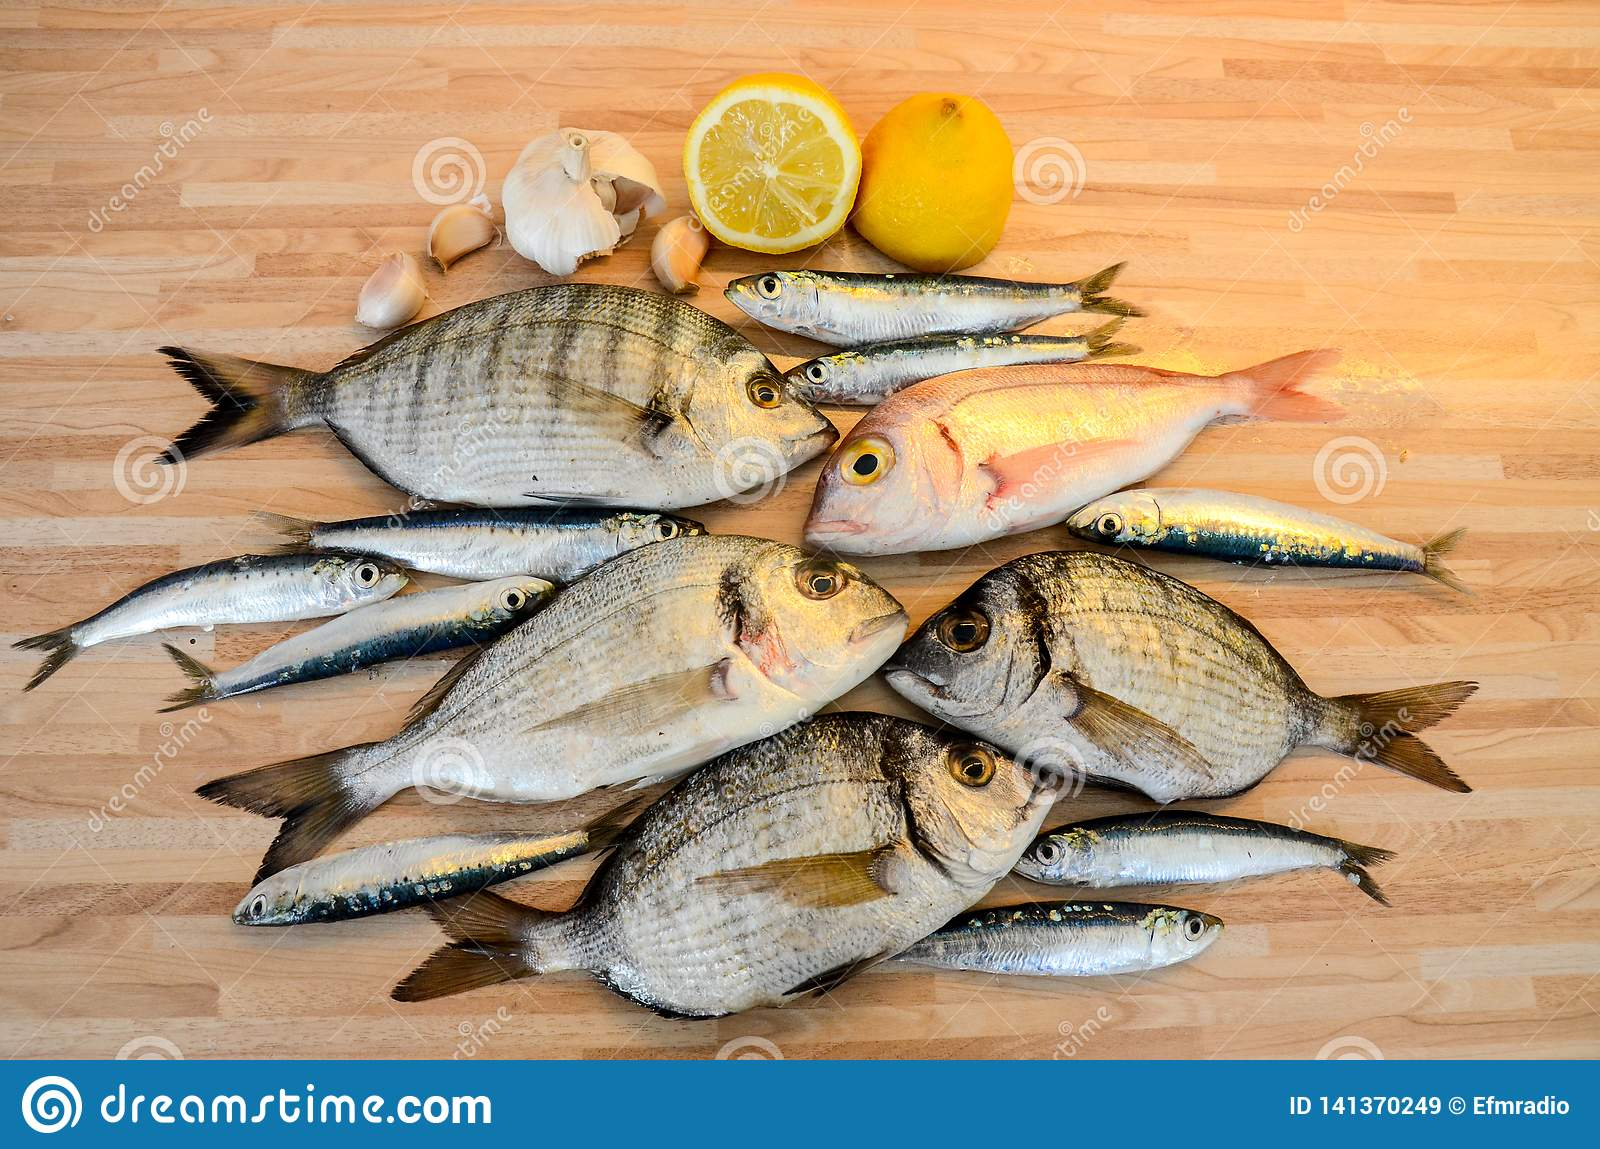 Fresh fish with lemon ready for cooking. Preparing delicious and tasty seafood meal. Uncooked Gilt-head sea bream, Sardines, Commo